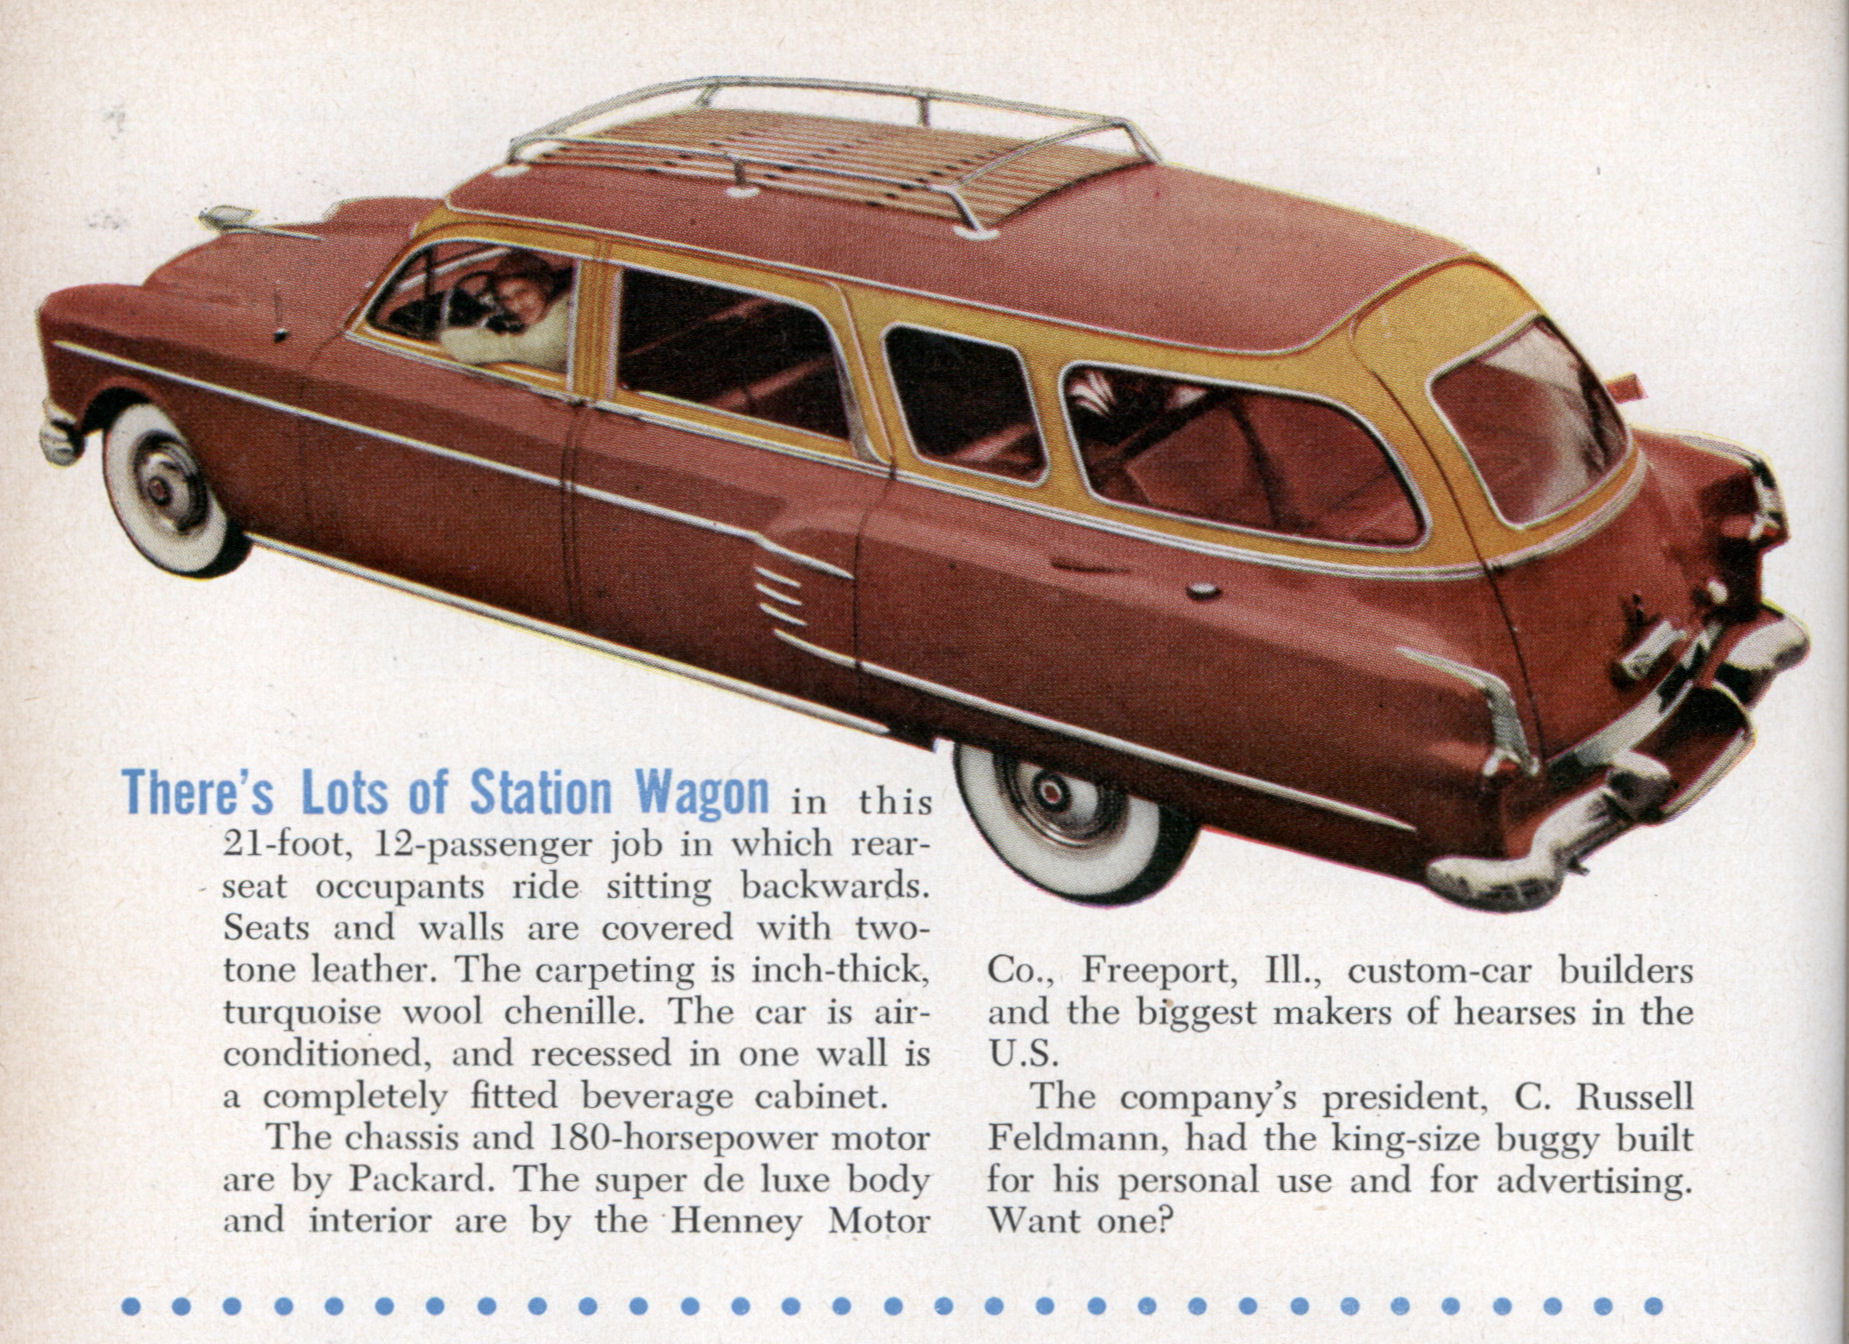 21 Foot 12 Passenger Station Wagon Modern Mechanix